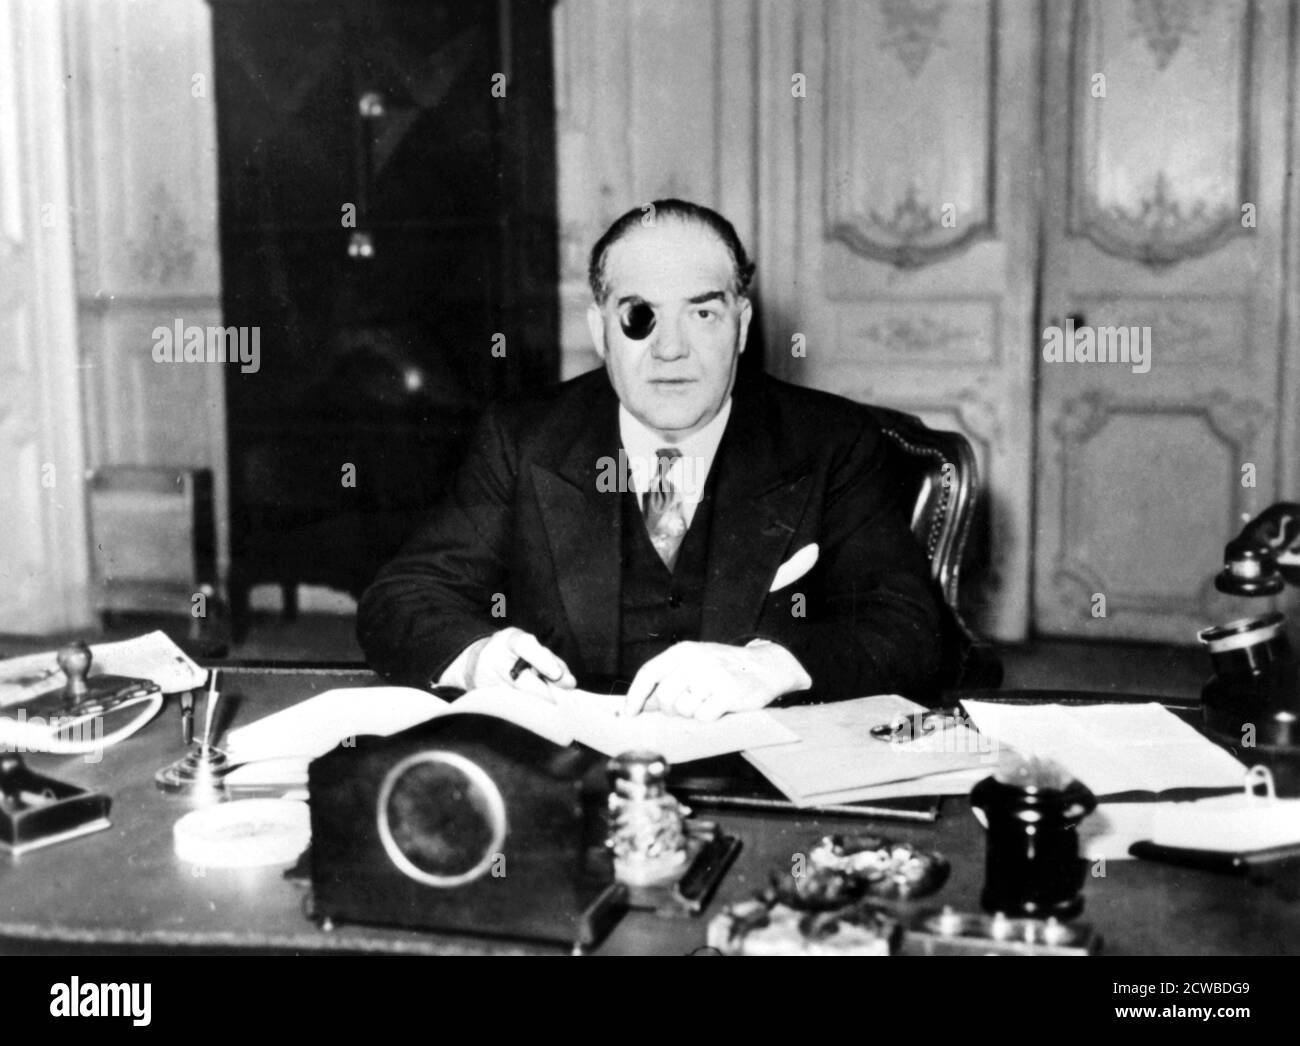 Xavier Vallat, Vichy French Commissioner-General for Jewish Questions, France, April, 1941. Vallat was appointed head of the Commissariat-General for Jewish Questions, the body responsible for implementing the Vichy regime's anti-semitic laws, in March 1941. Vichy France co-operated enthusiastically with the Nazis plans for the extermination of the Jews. Some 76,000 French Jews were rounded up and sent to concentration camps between 1942 and 1944, with only 2500 surviving. Vallat was dismissed as Commissioner-General in May 1942 for his criticism of the refusal of the Nazis to release France's Stock Photo